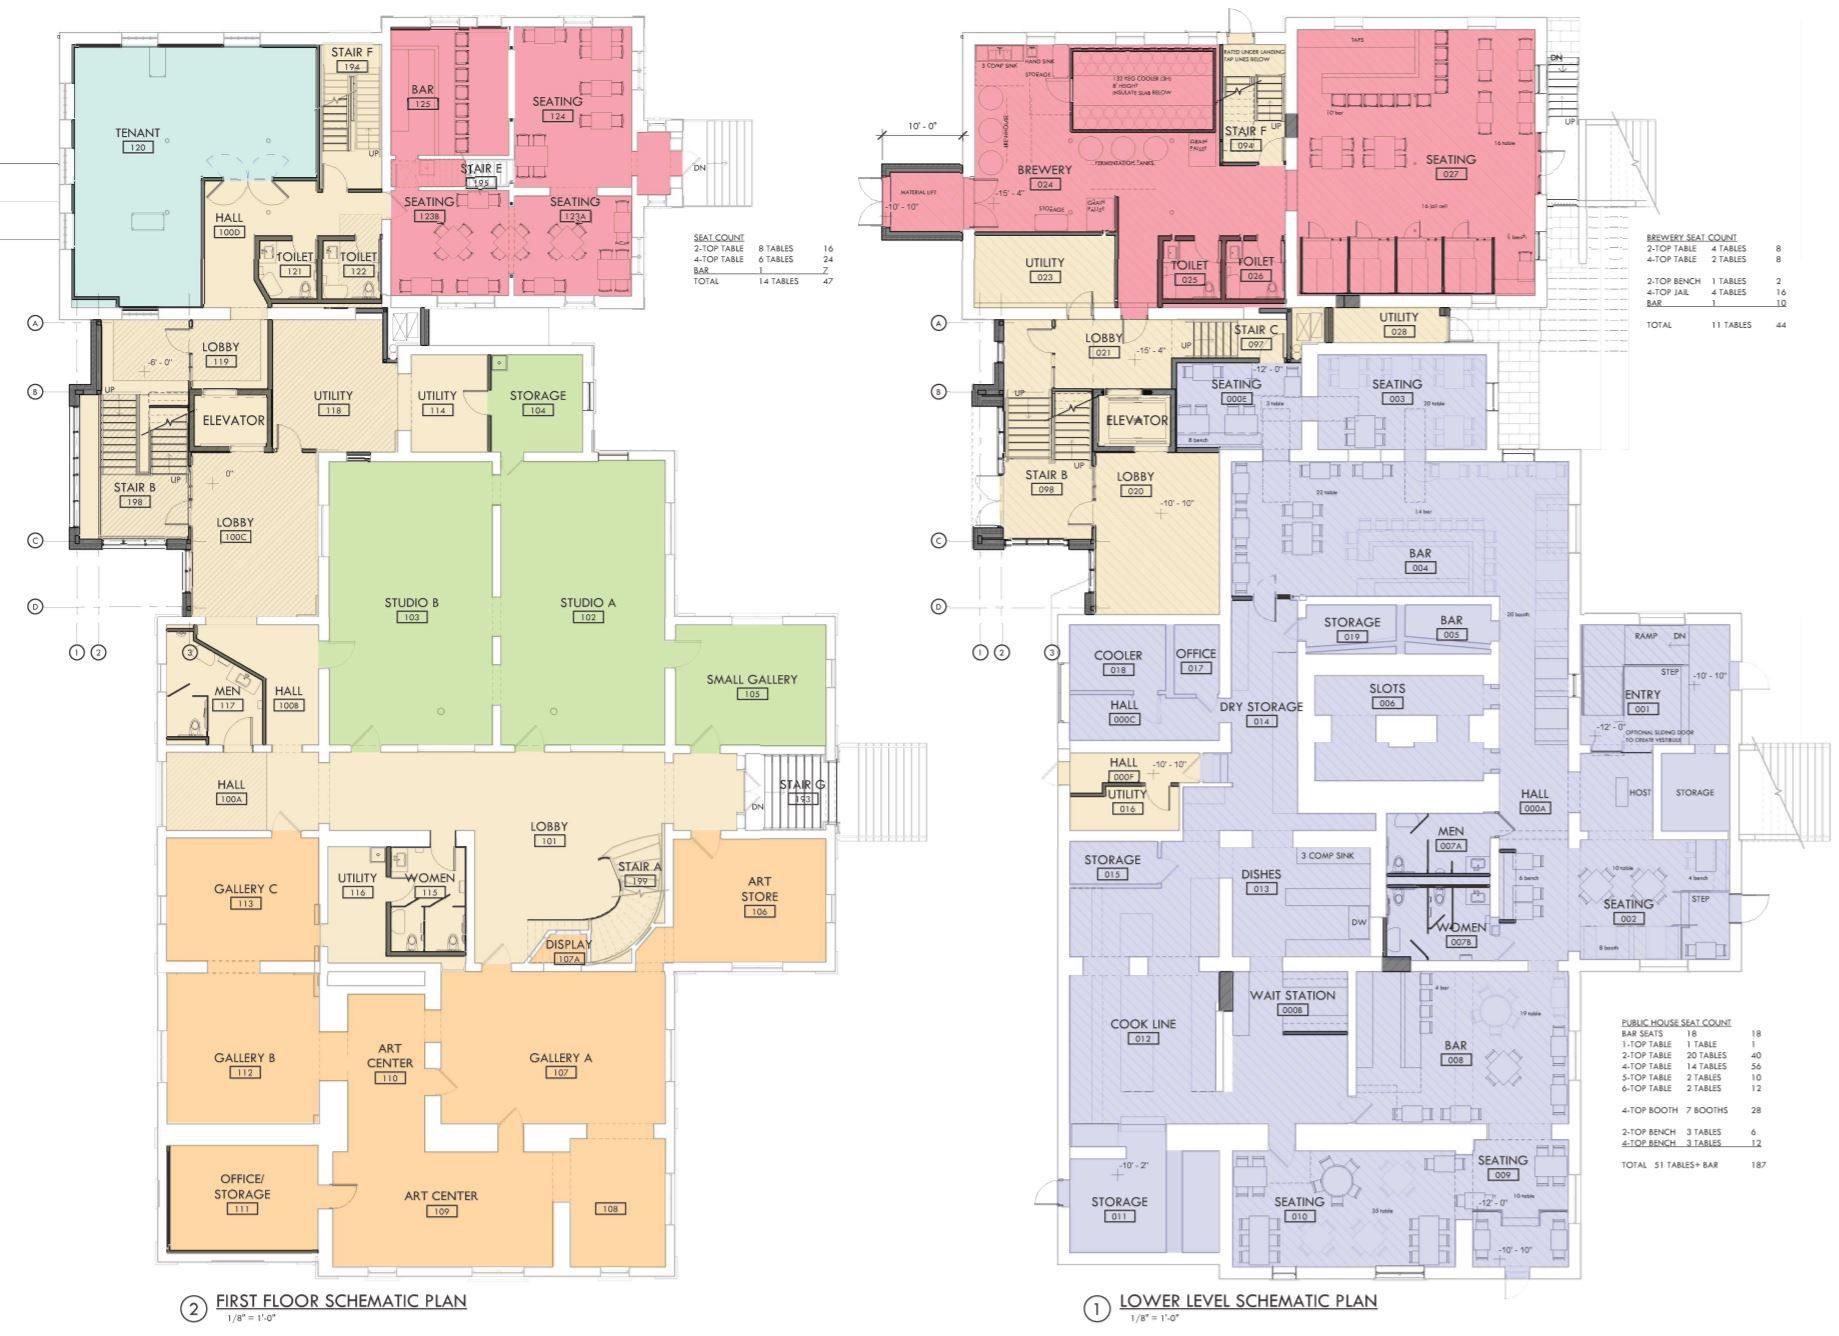 The latest floor plans for the renovated Old Courthouse and Sheriff's Jail complex in the center of downtown Woodstock show where Milwaukee-based MobCraft Beer would operate its brewery and taproom and where the Public House restaurant would seat its guests, as well as an event and banquet space upstairs that will be run by Ethereal Confections.